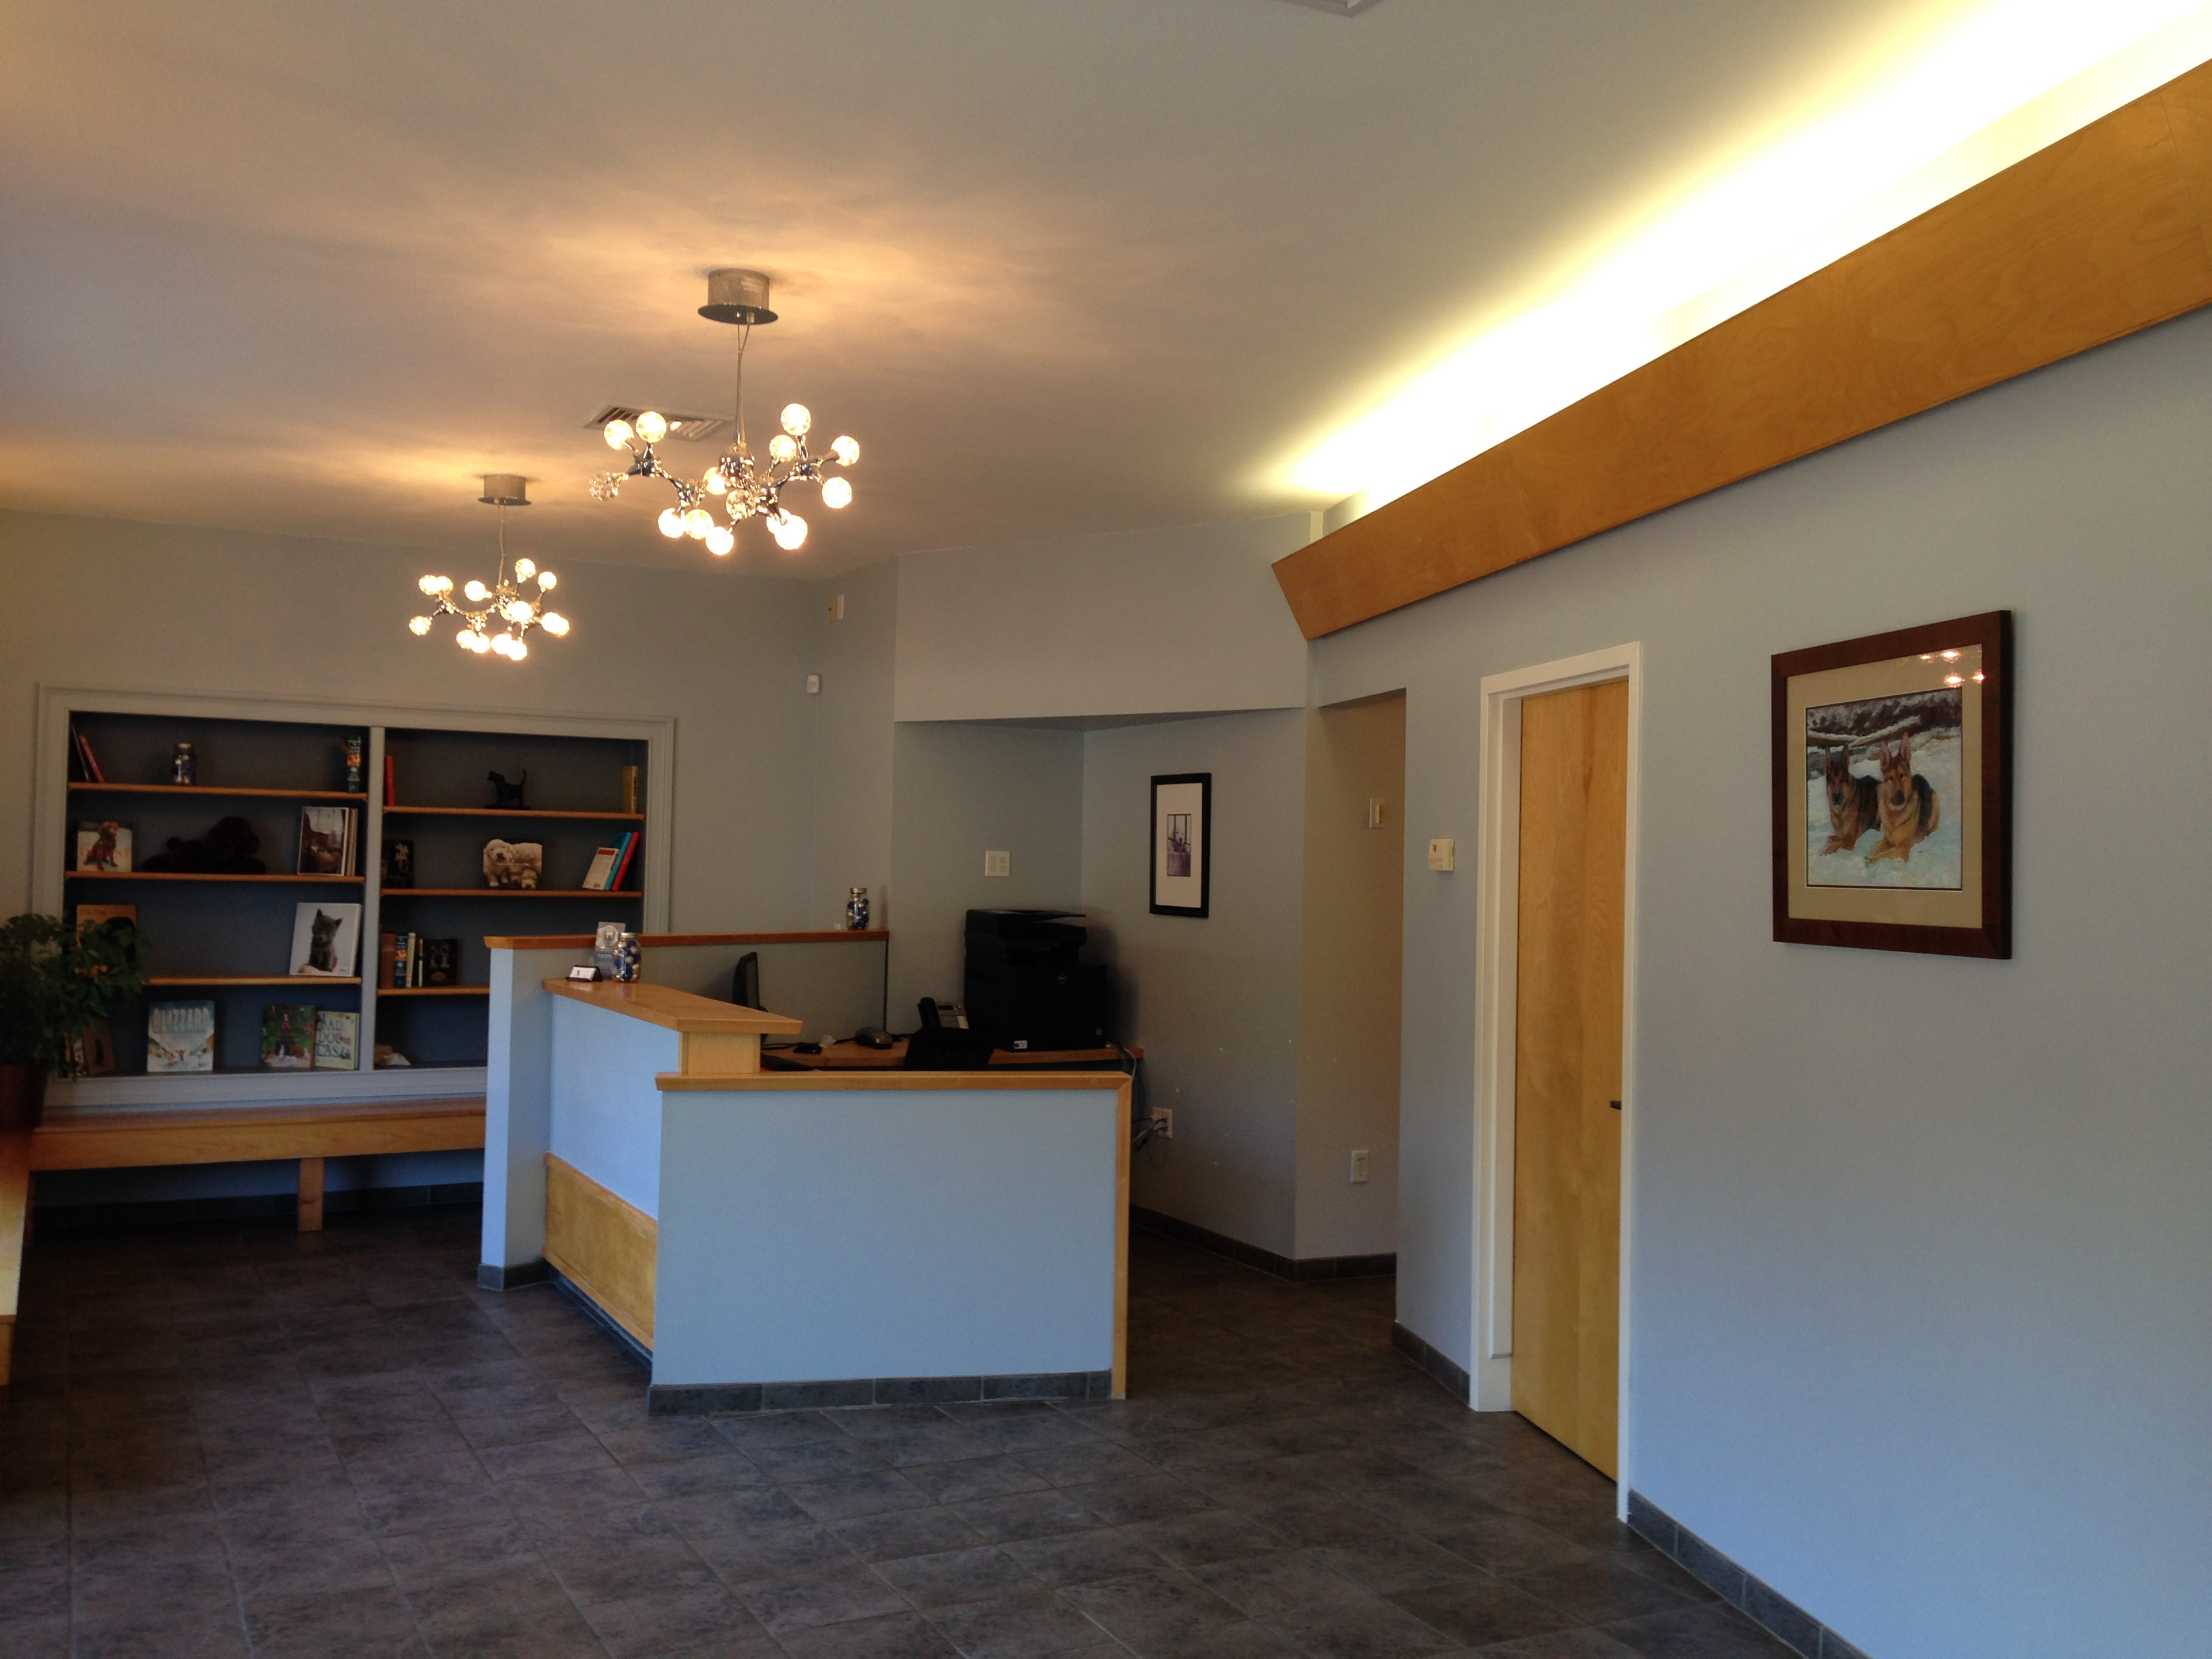 Avon Veterinary Emergency Referral entrance and waiting area